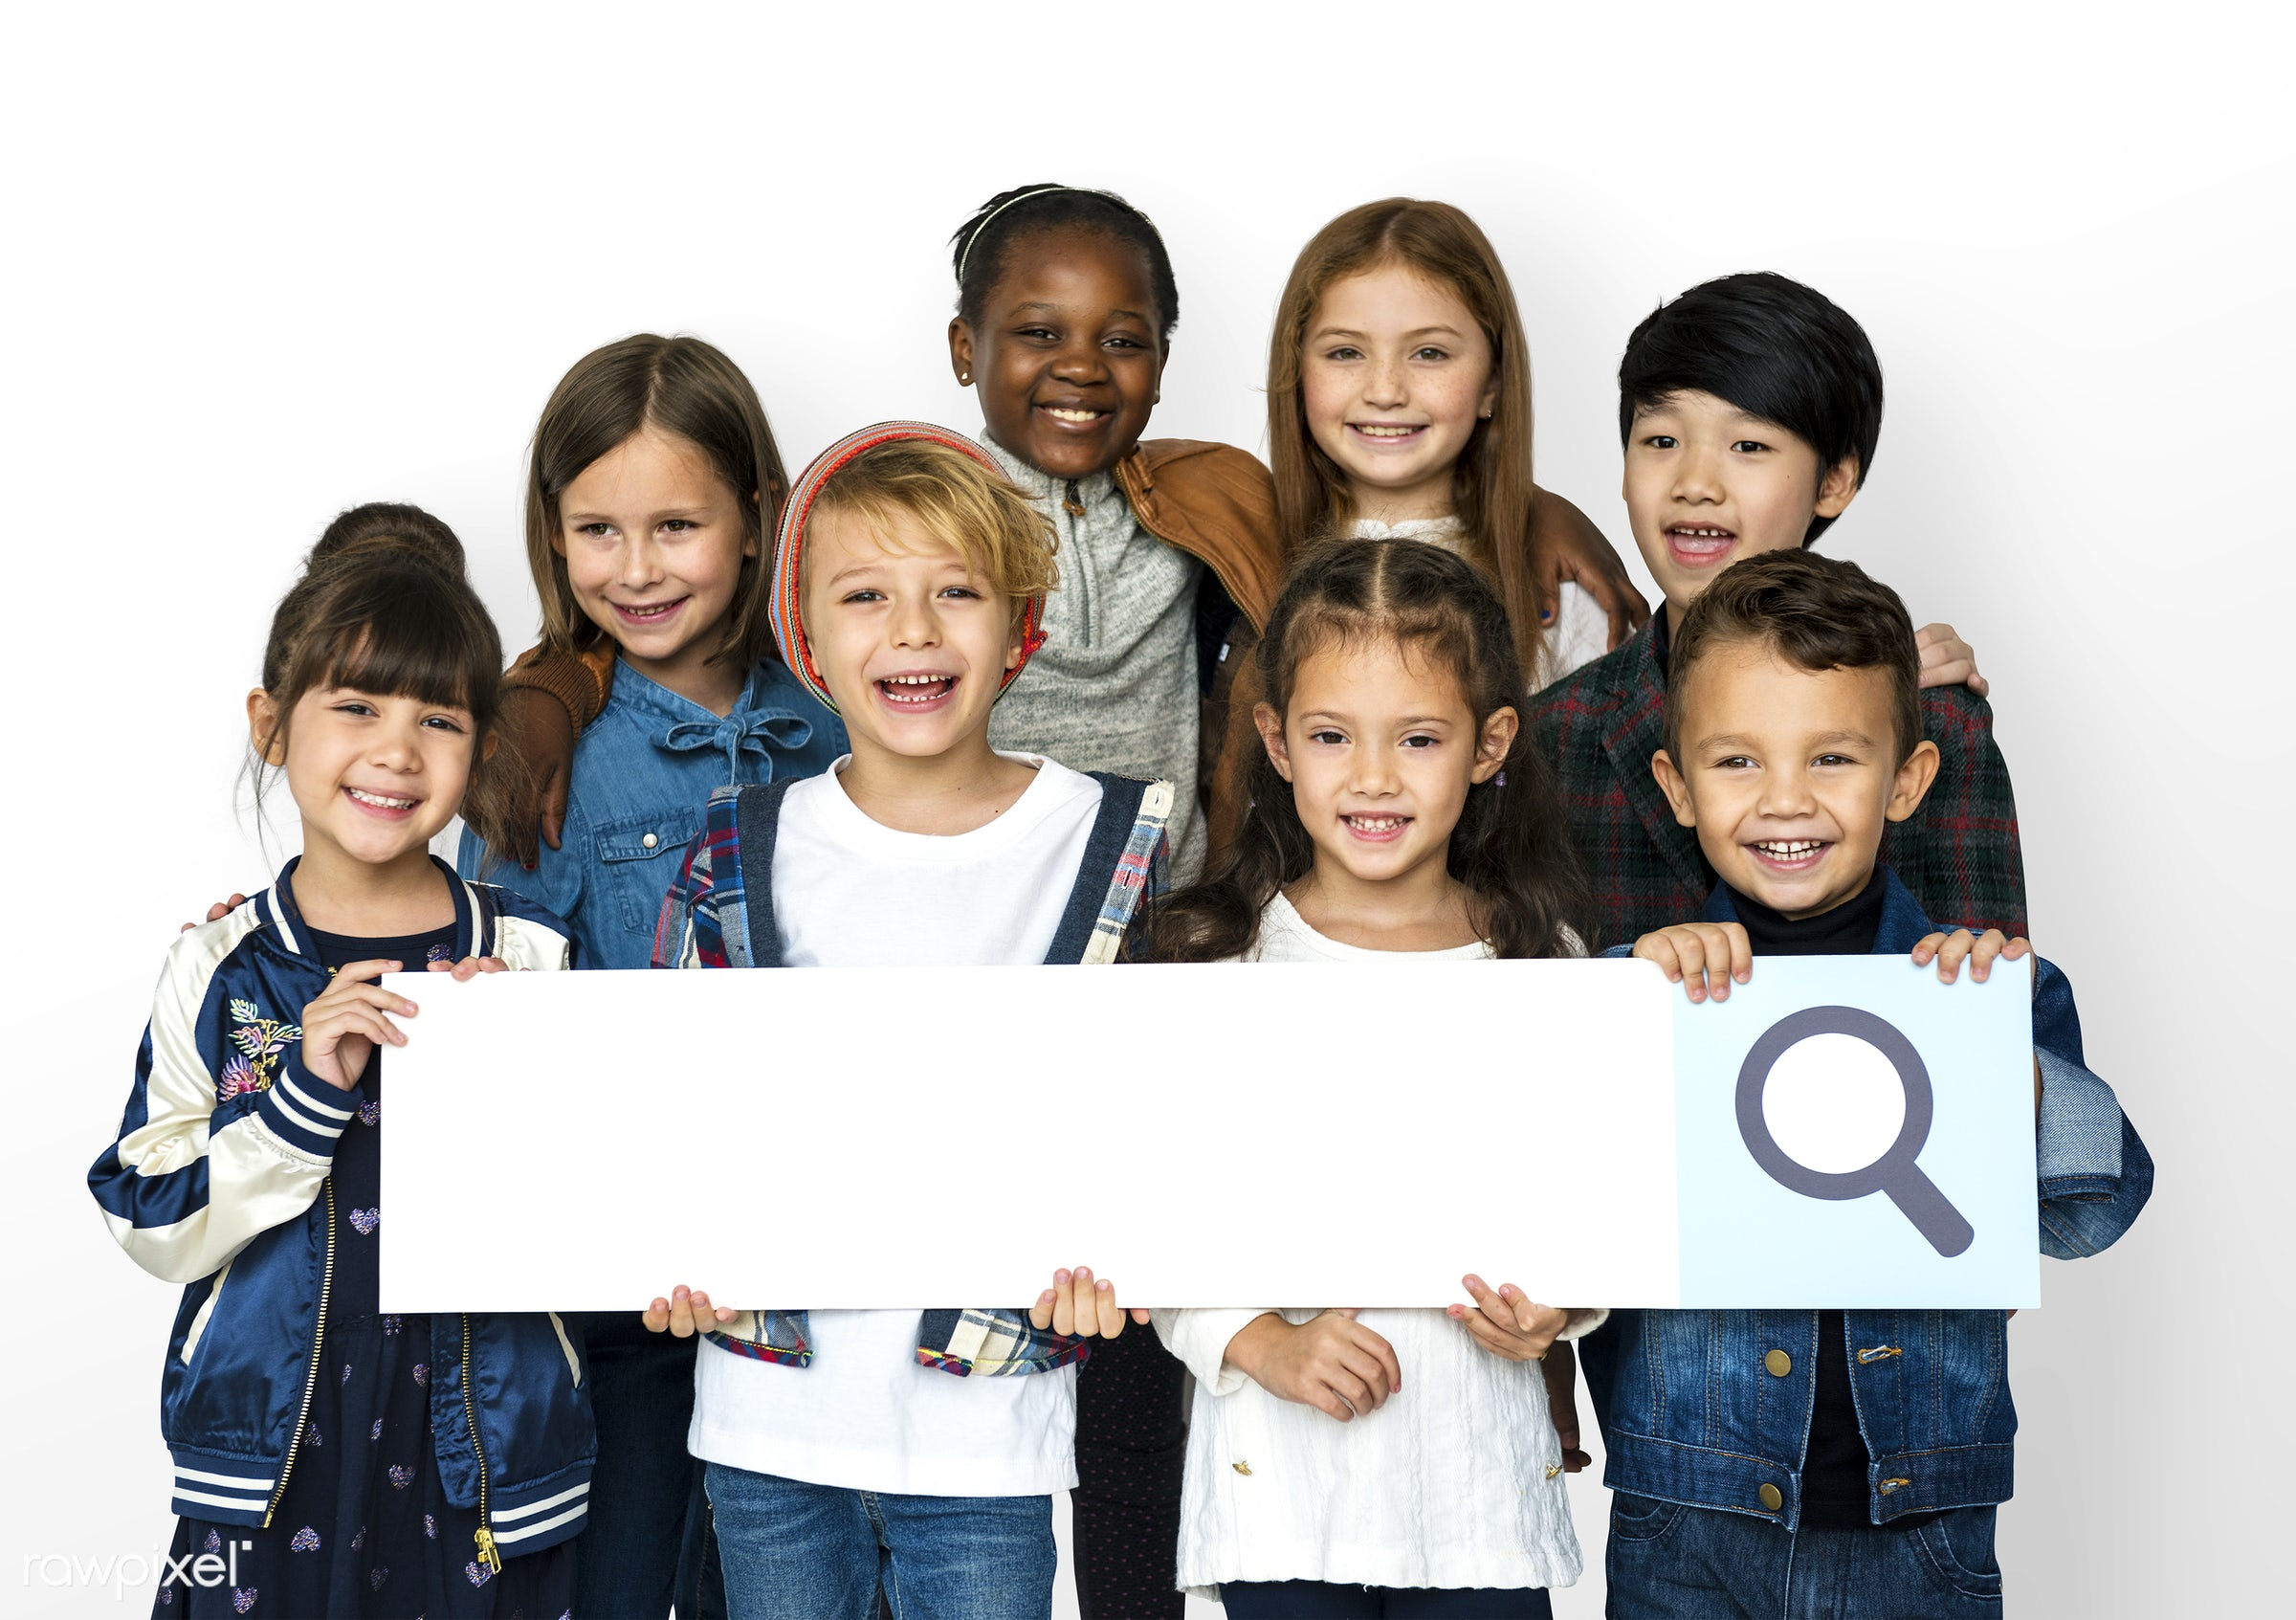 child, model, adorable, background, buddy, casual, cheerful, childhood, children, classmates, copy space, diverse, diversity...